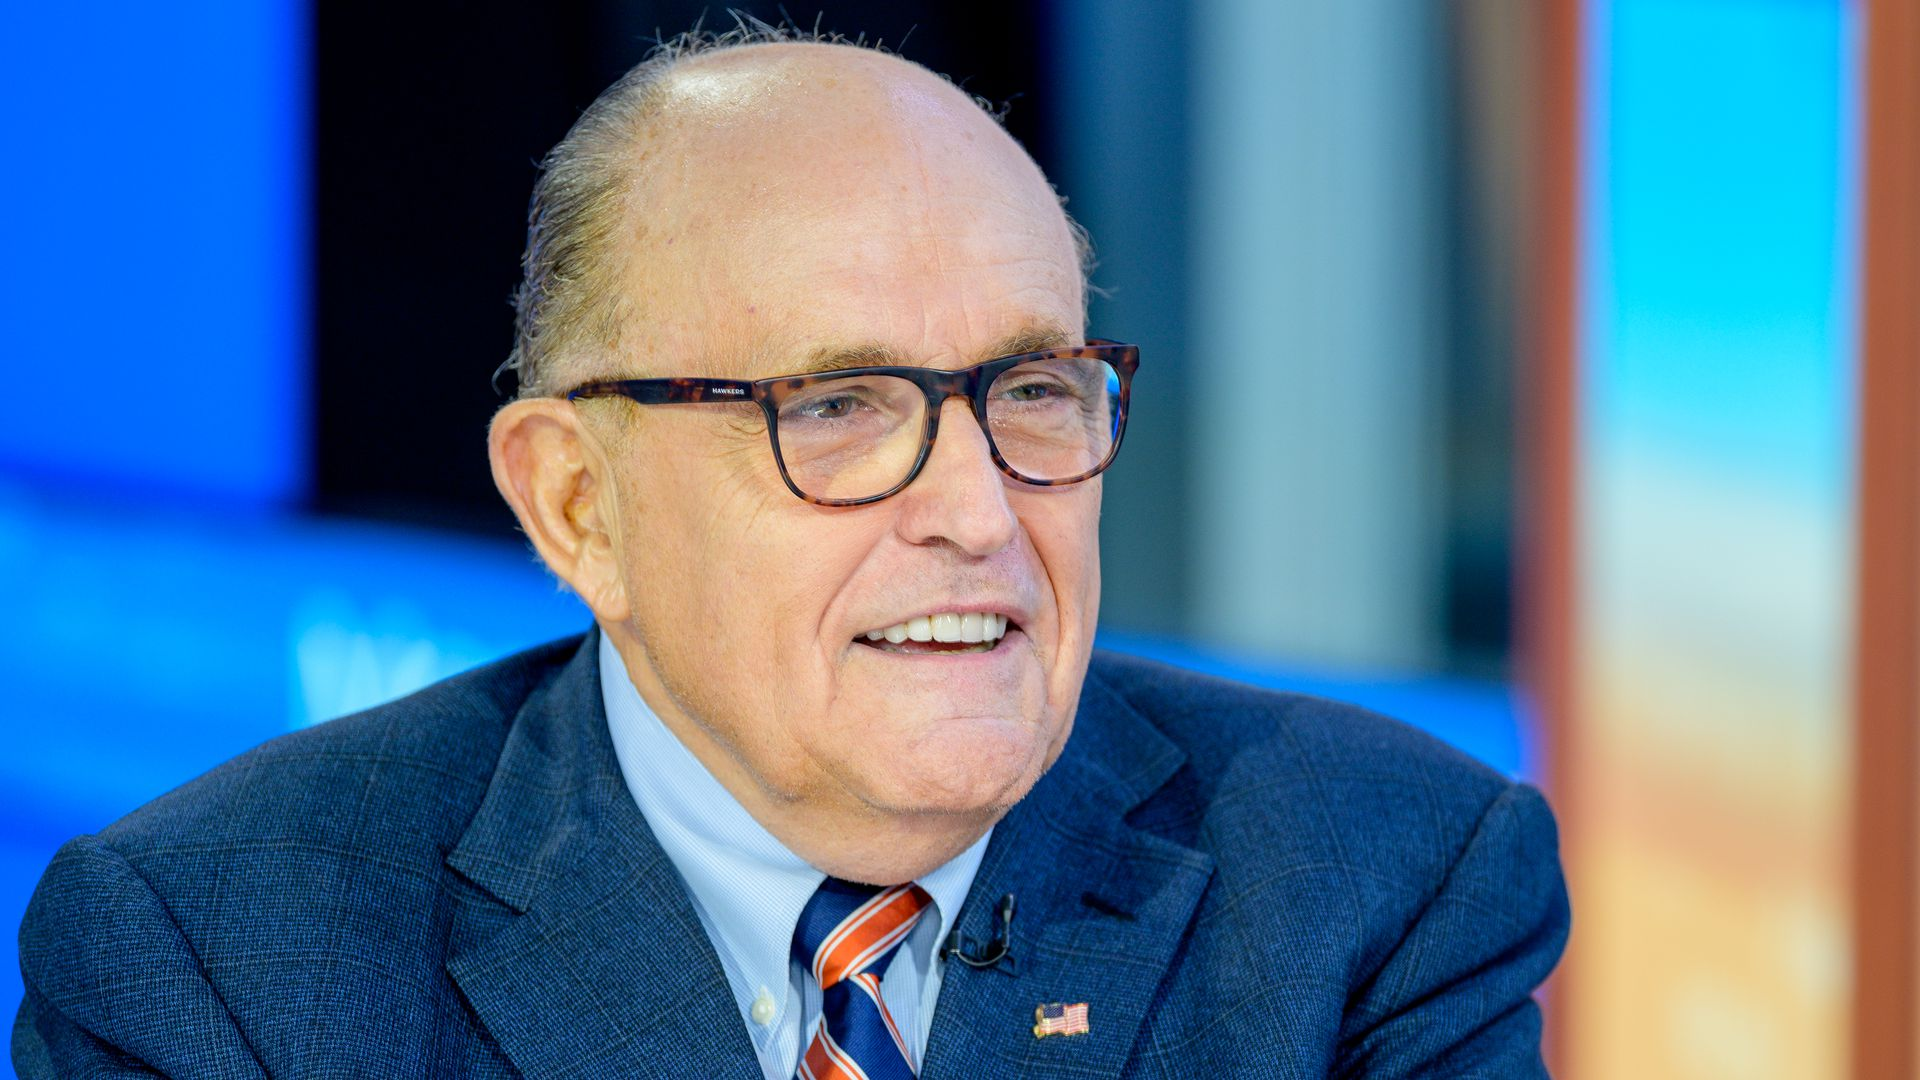 NYT: Rudy Giuliani under federal investigation for Ukraine deals